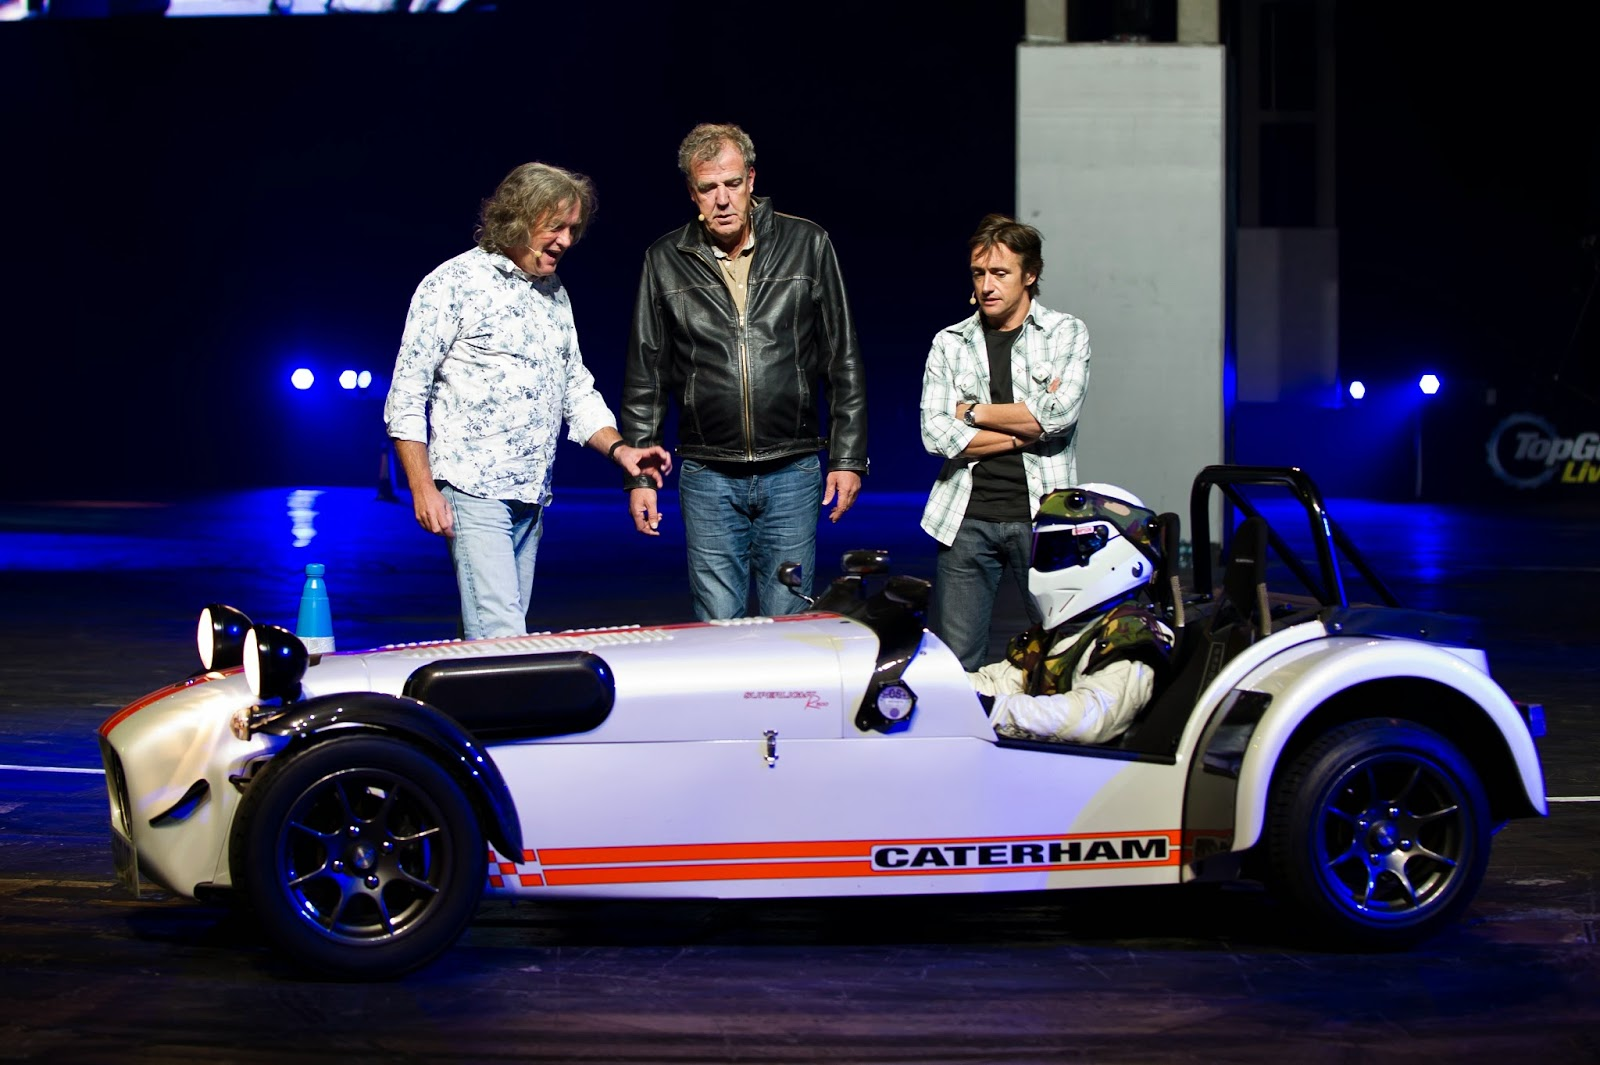 The jeremy clarkson debacle is what top gear needed